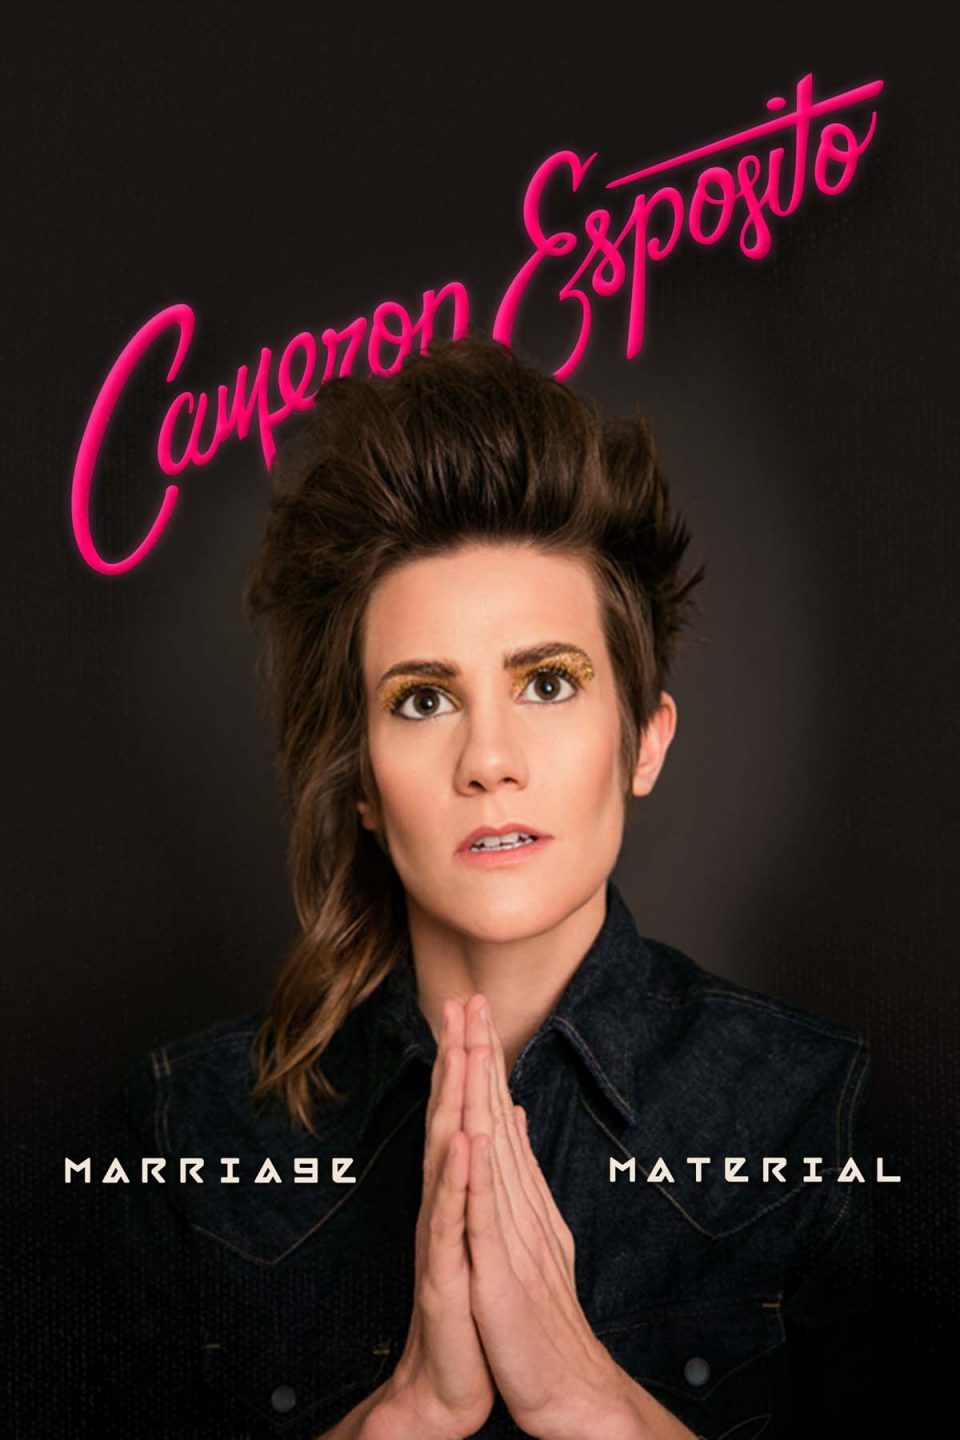 Cameron Esposito Marriage Material Premiere 2000x3000 Vertical